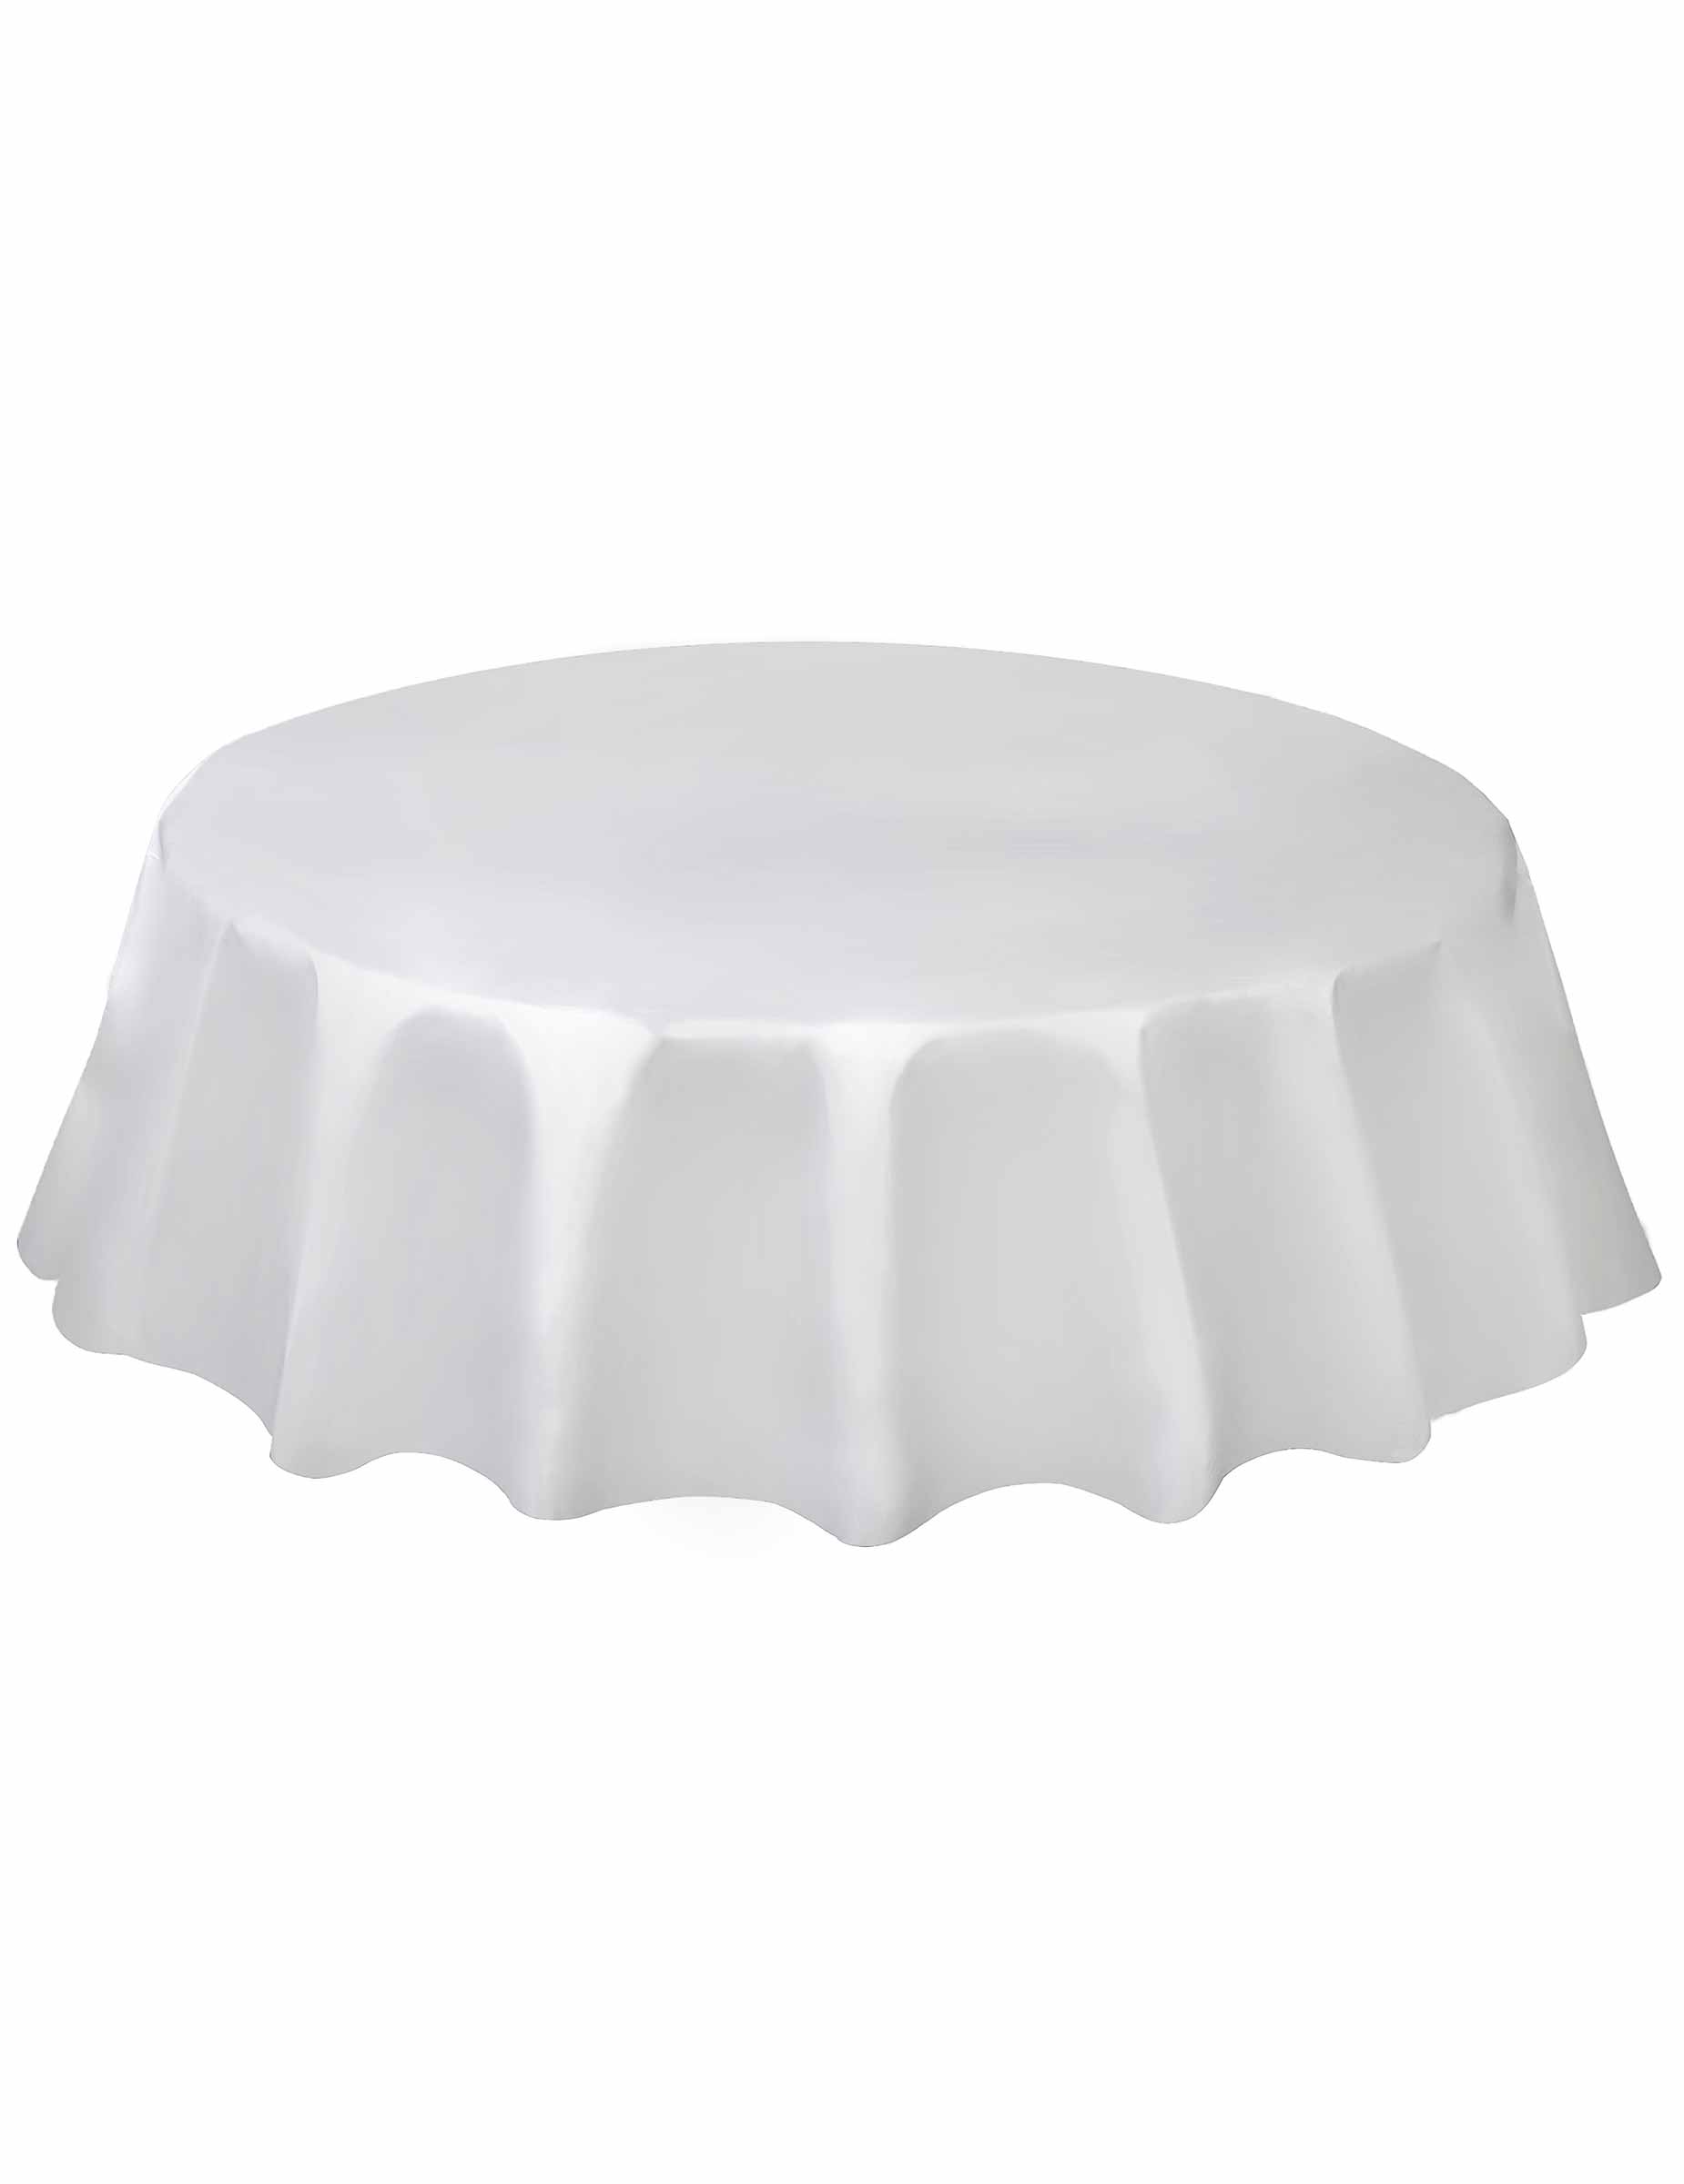 nappe ronde en plastique blanche 213 cm d coration. Black Bedroom Furniture Sets. Home Design Ideas